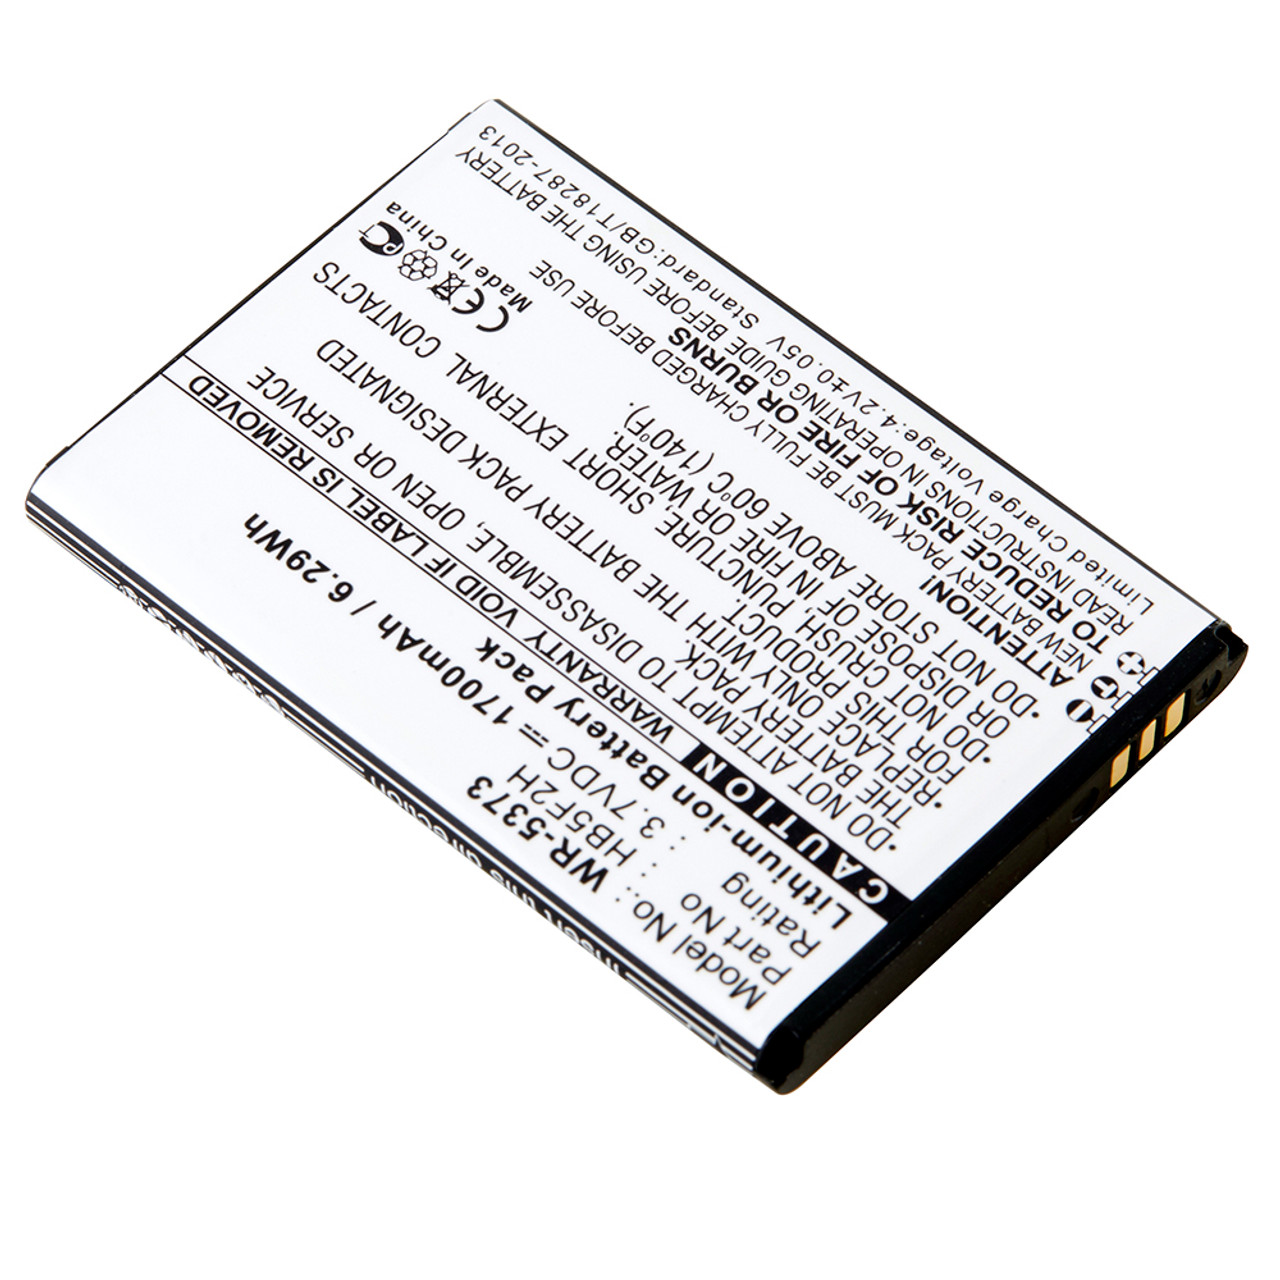 Huawei E5330Bs-2 3 7V 1700mAh Li-ion Wireless Network Interface Replacement  Battery